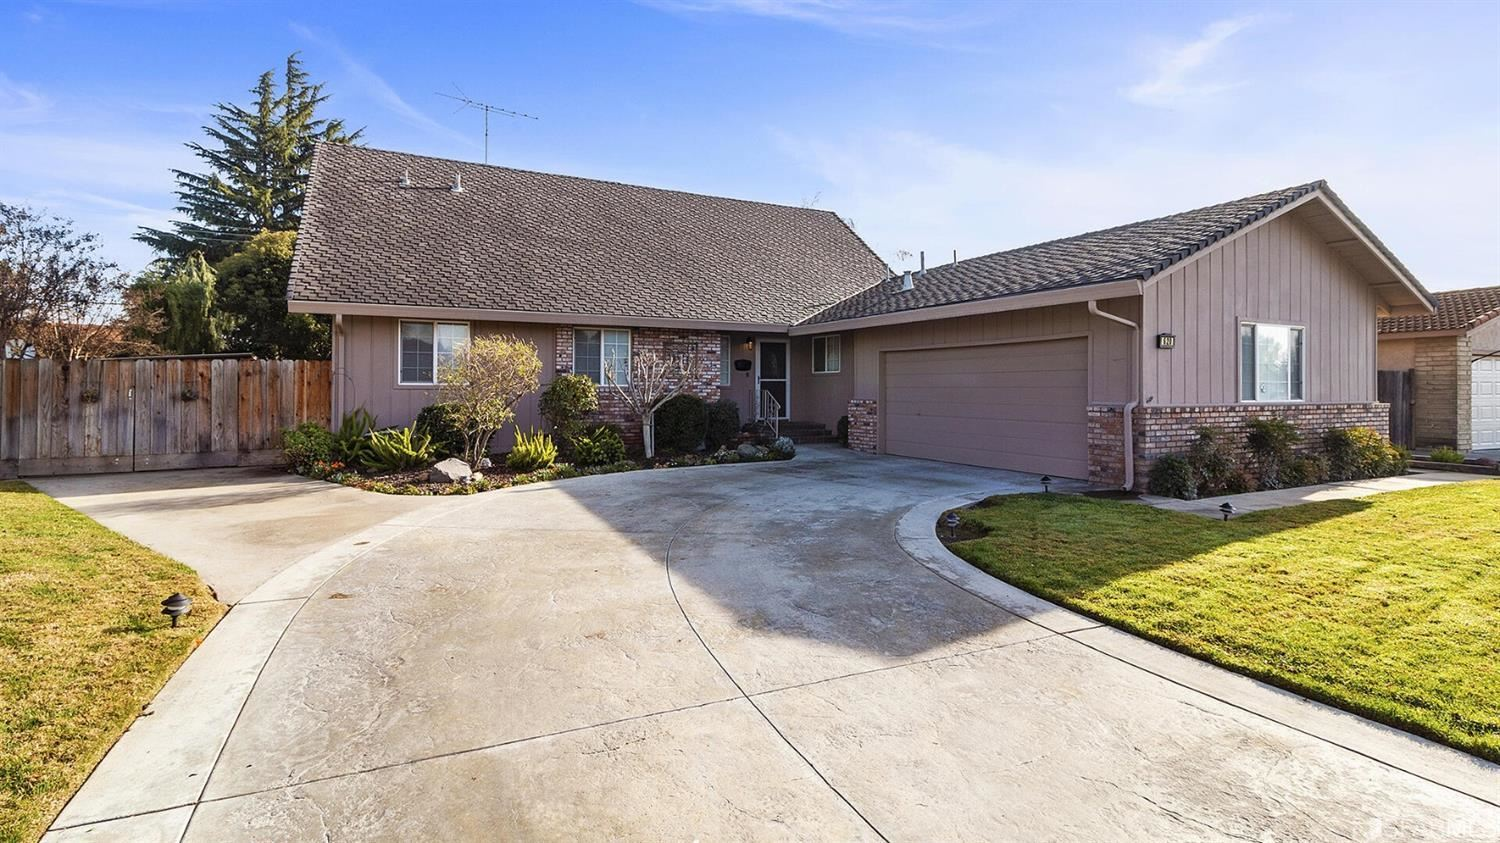 Property Image Of 620 South Wilma Avenue In Ripon, Ca